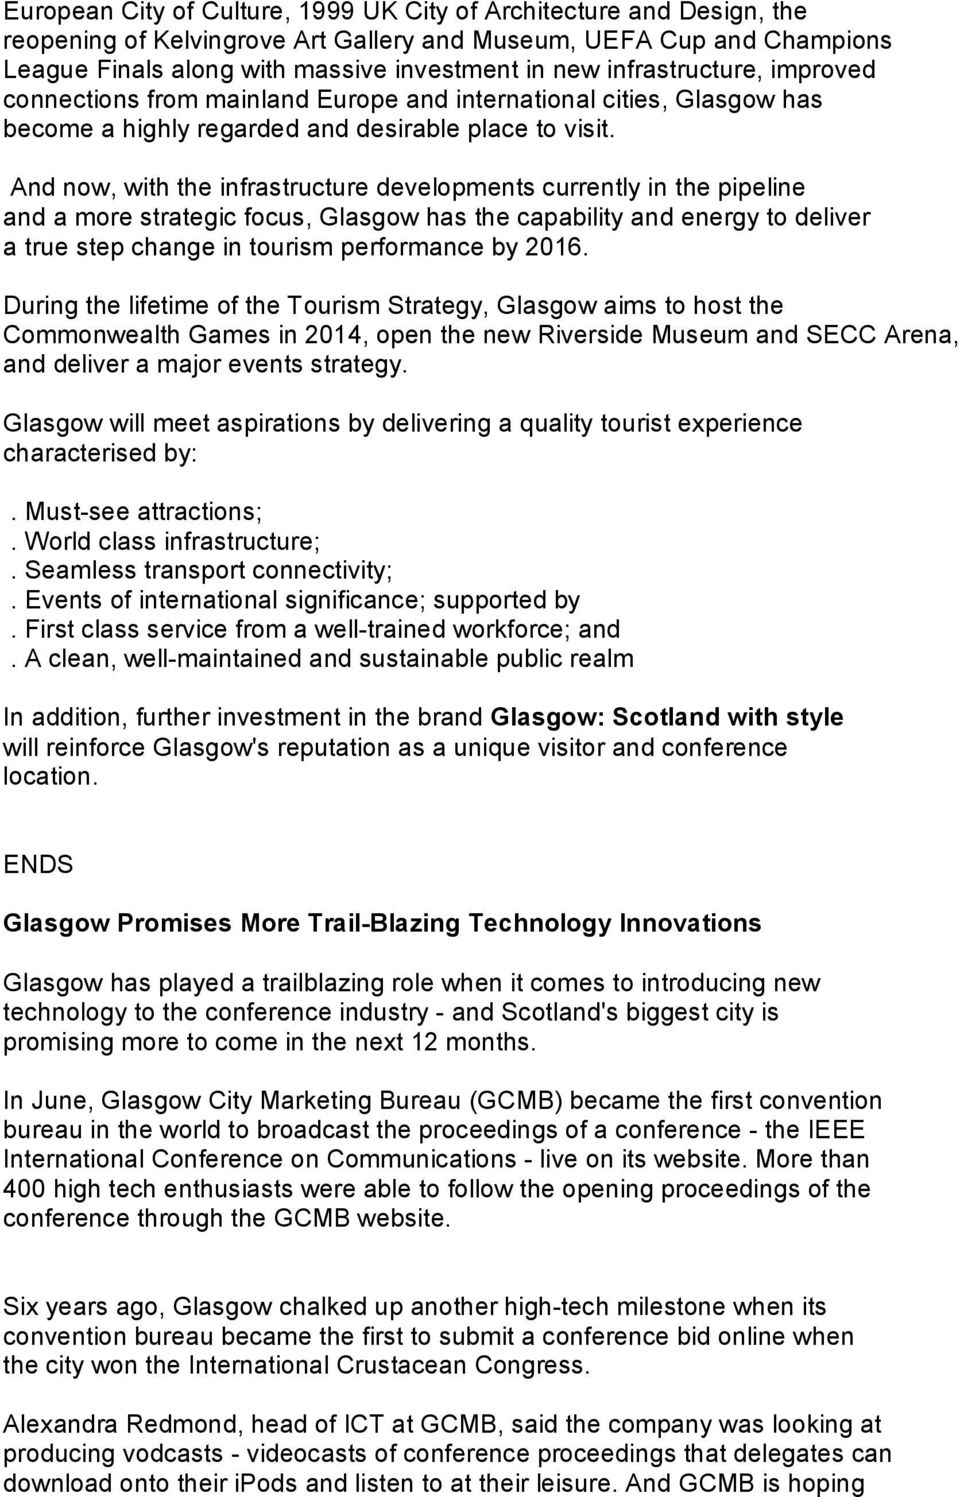 And now, with the infrastructure developments currently in the pipeline and a more strategic focus, Glasgow has the capability and energy to deliver a true step change in tourism performance by 2016.